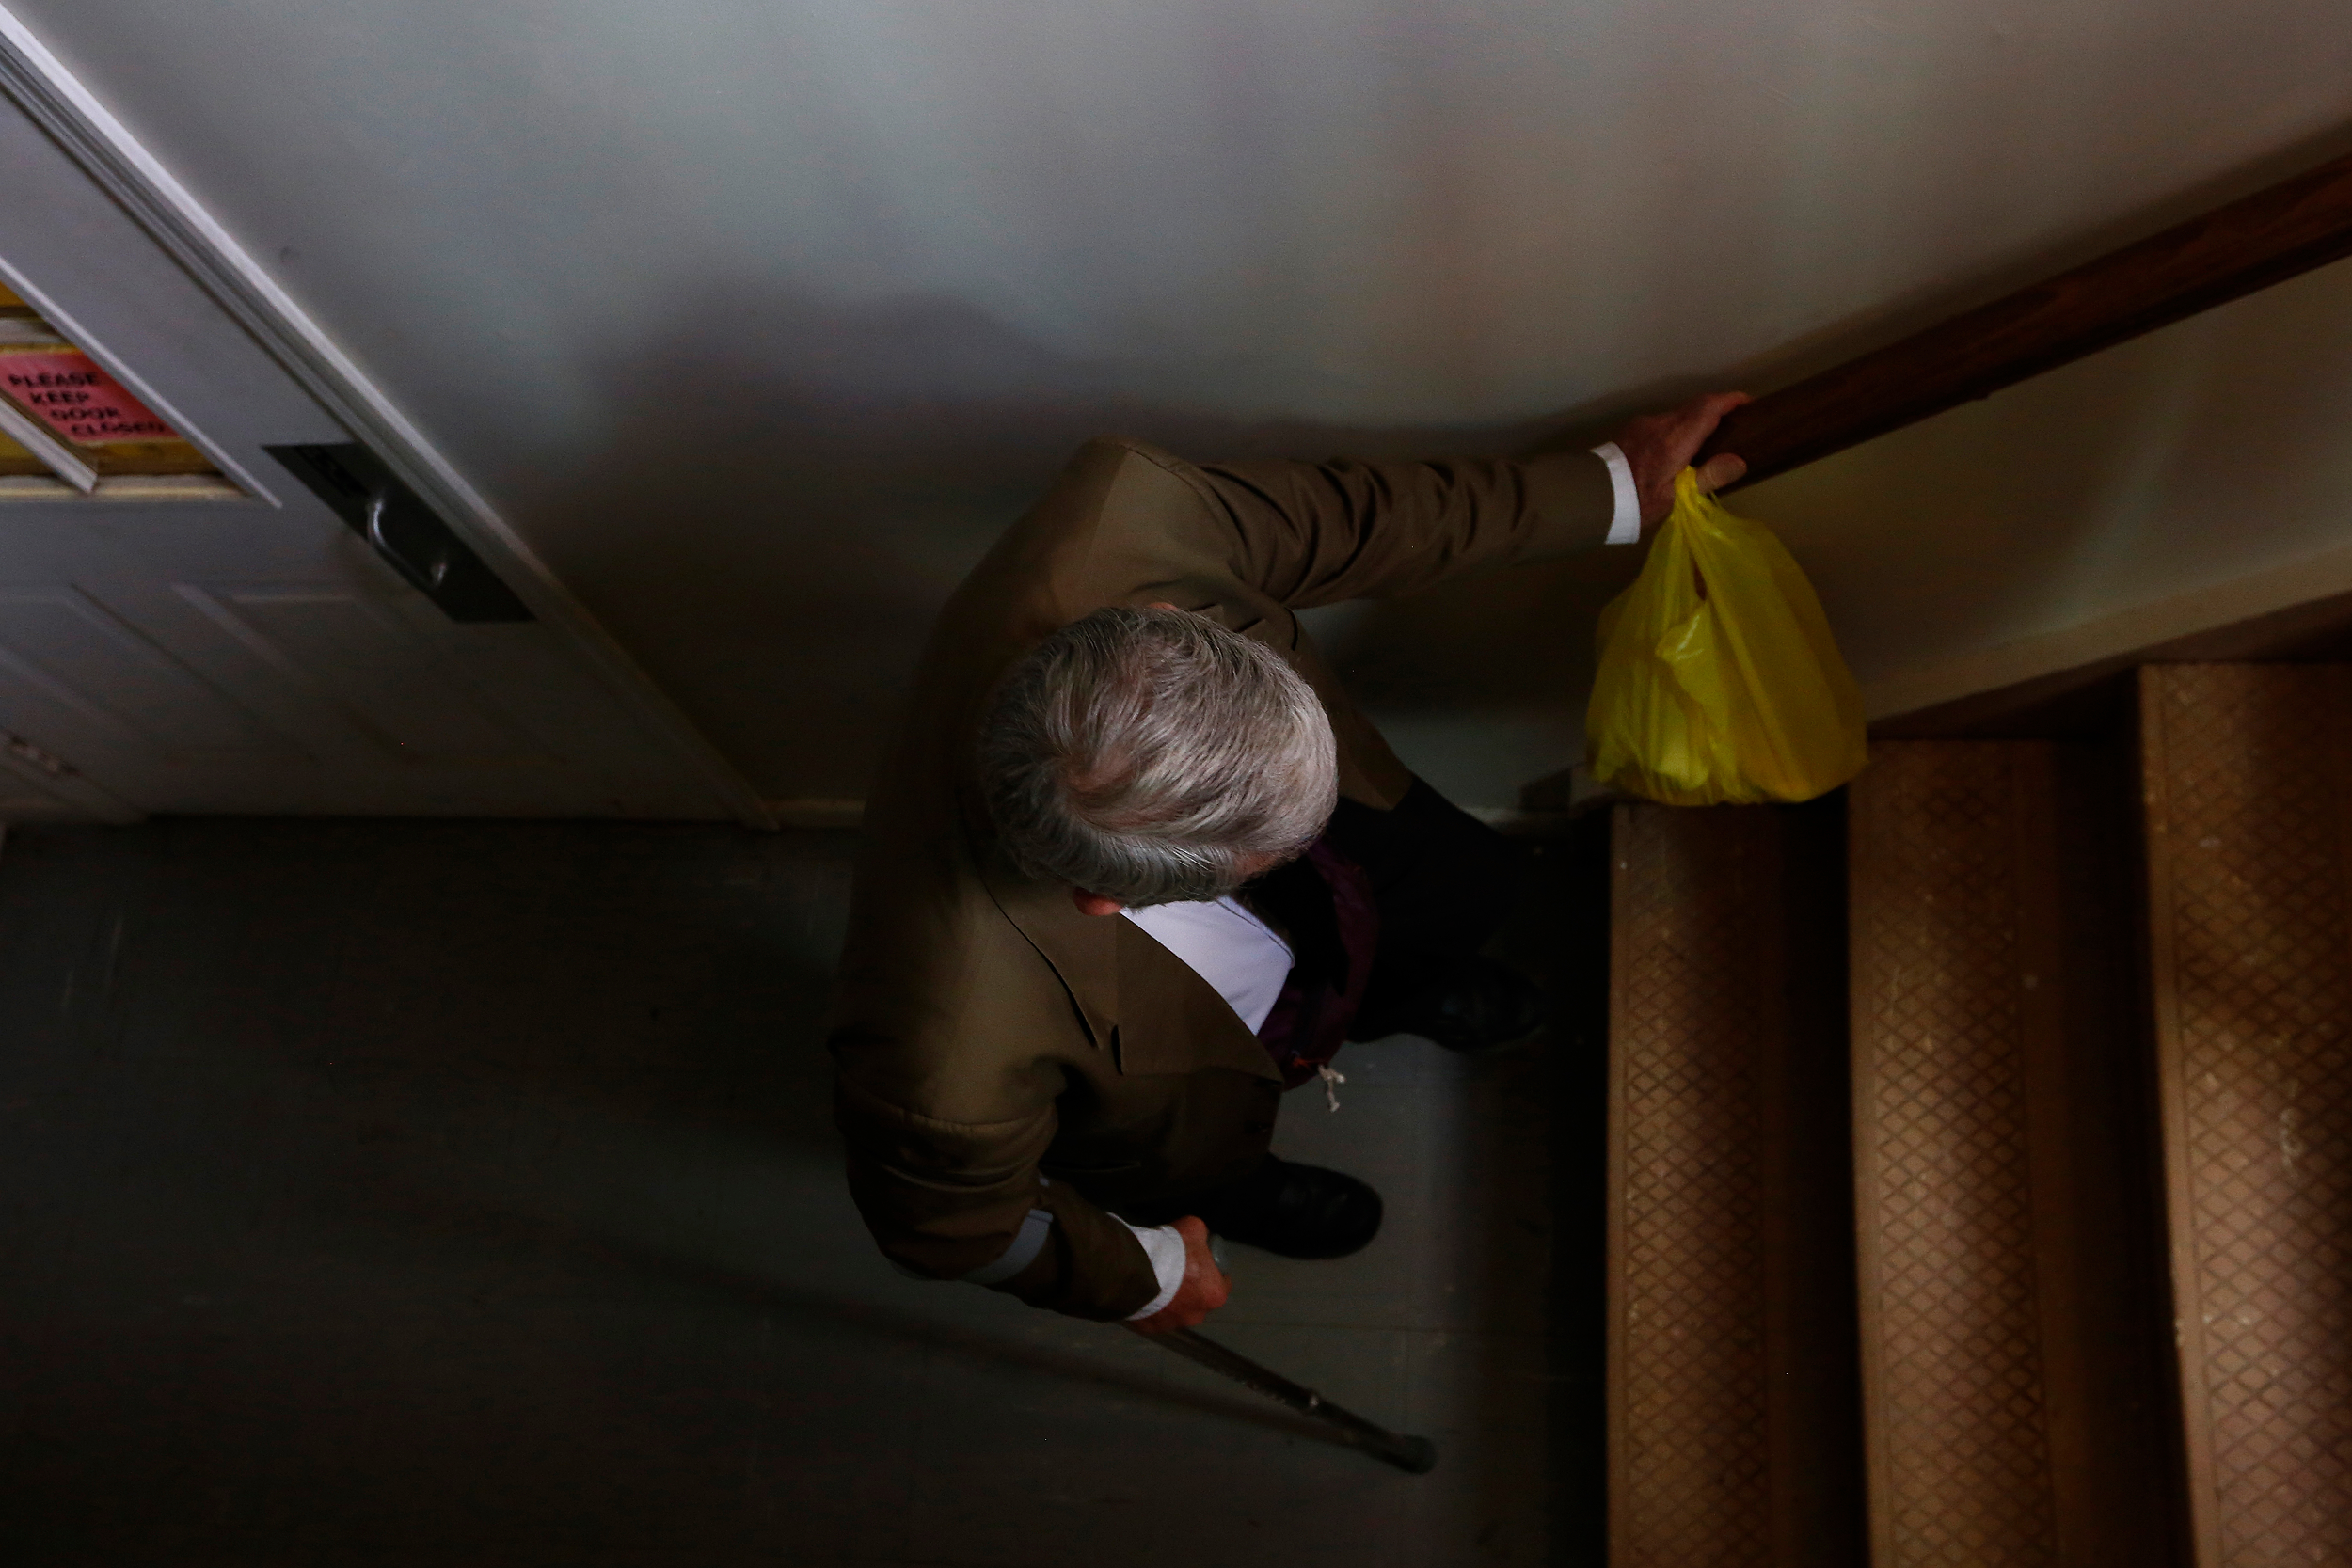 Ron walks up the stairs while at church. Ron believes that if he goes to church then something good will happen to him.